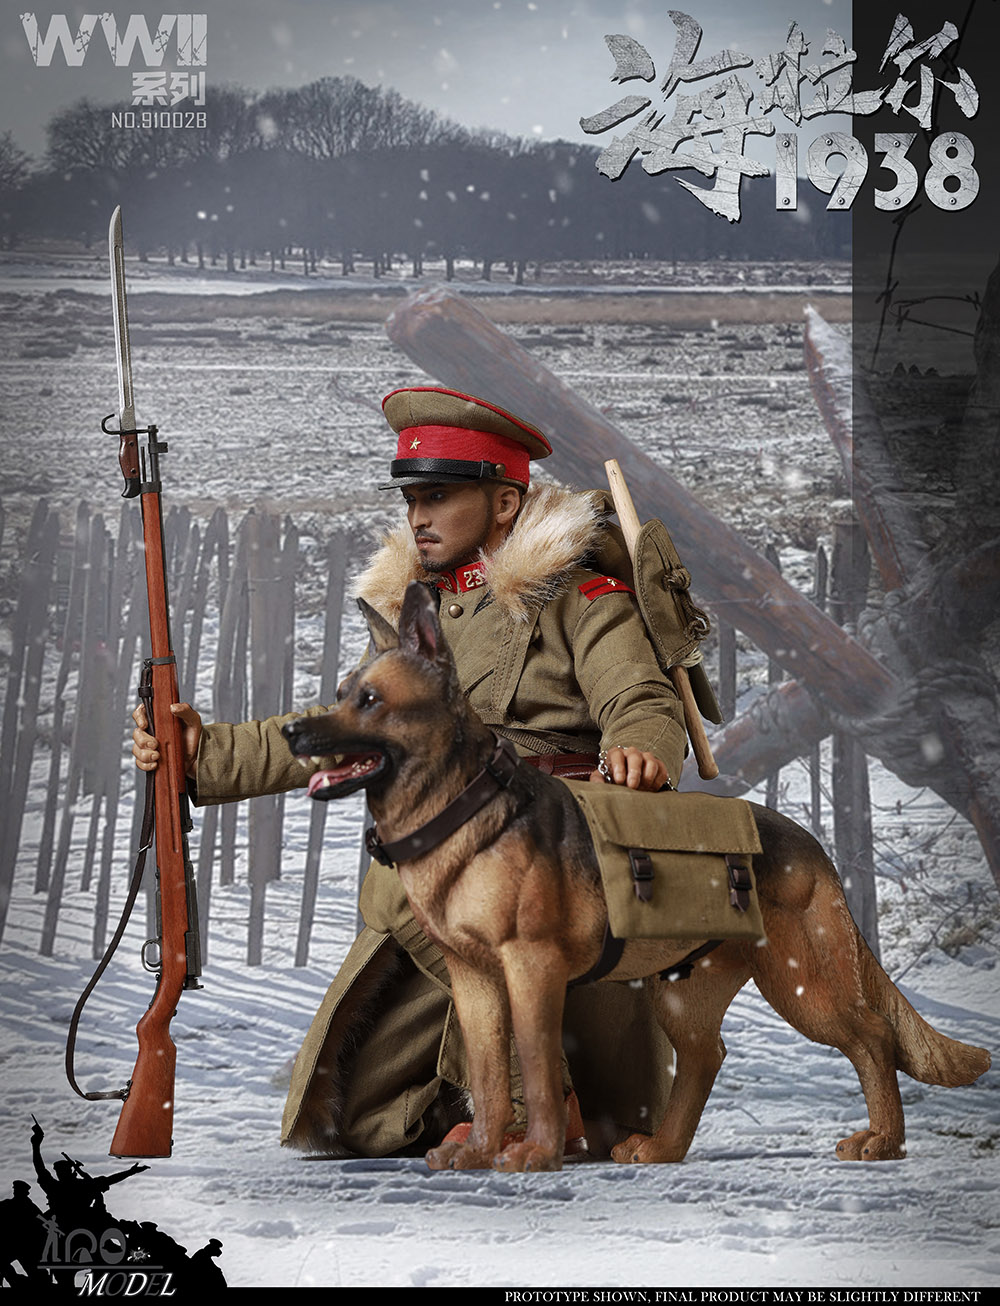 military - NEW PRODUCT: IQO Model: 1/6 WWII Series 1938 Hailar Scout (NO.91002A, B) 22114511